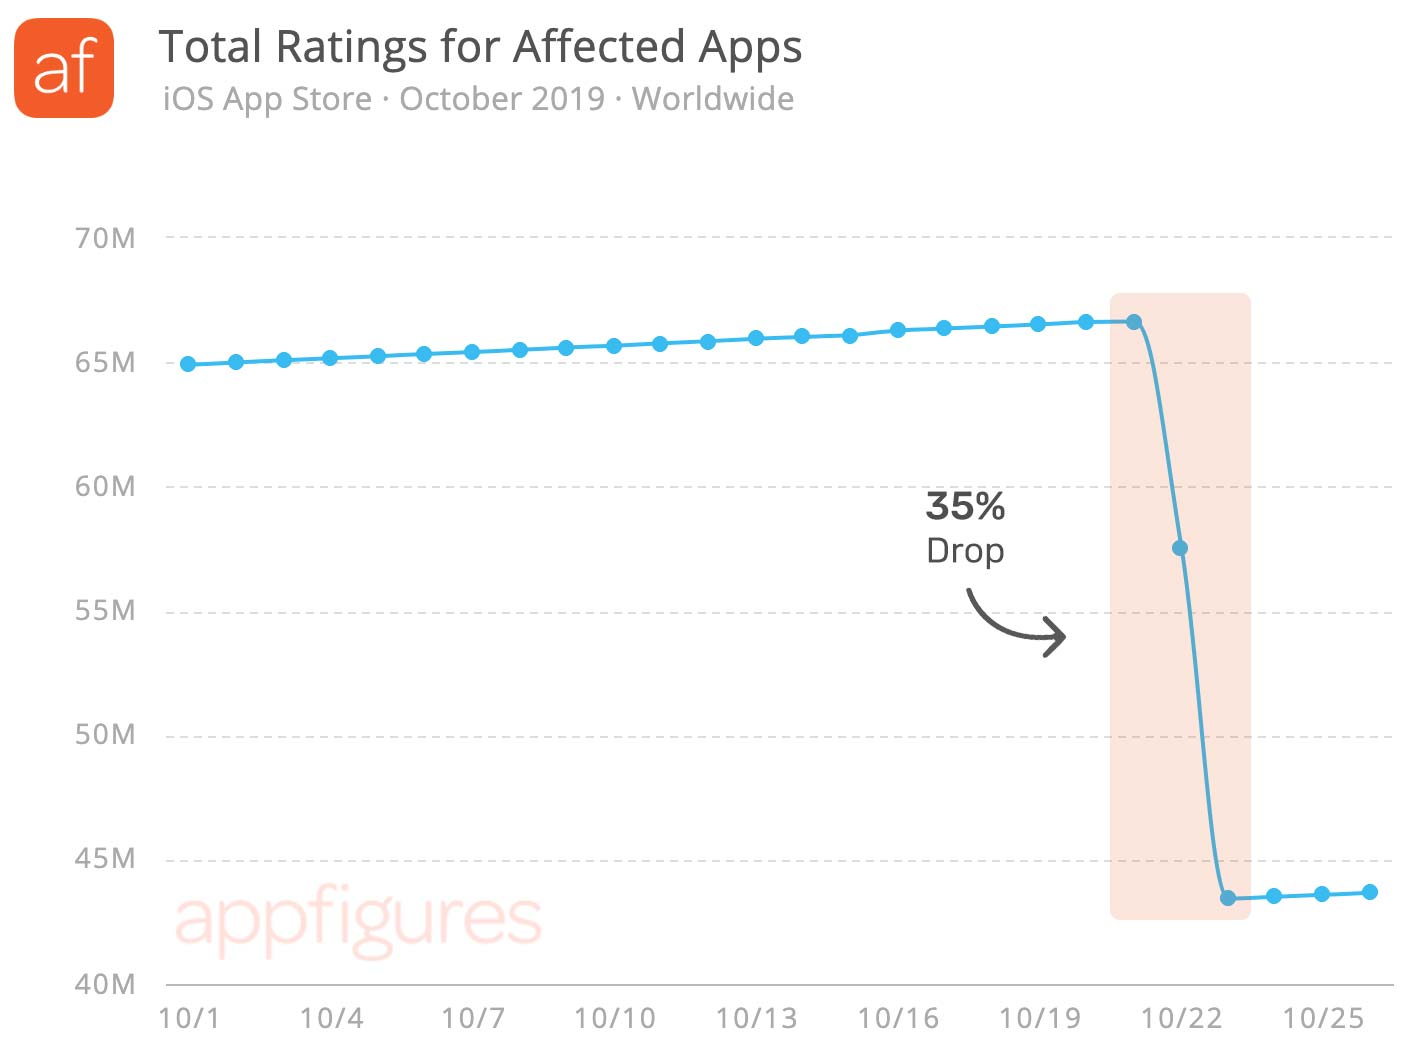 Apple Mistakenly Deletes 20 Million Apps Ratings in 2 Days 2